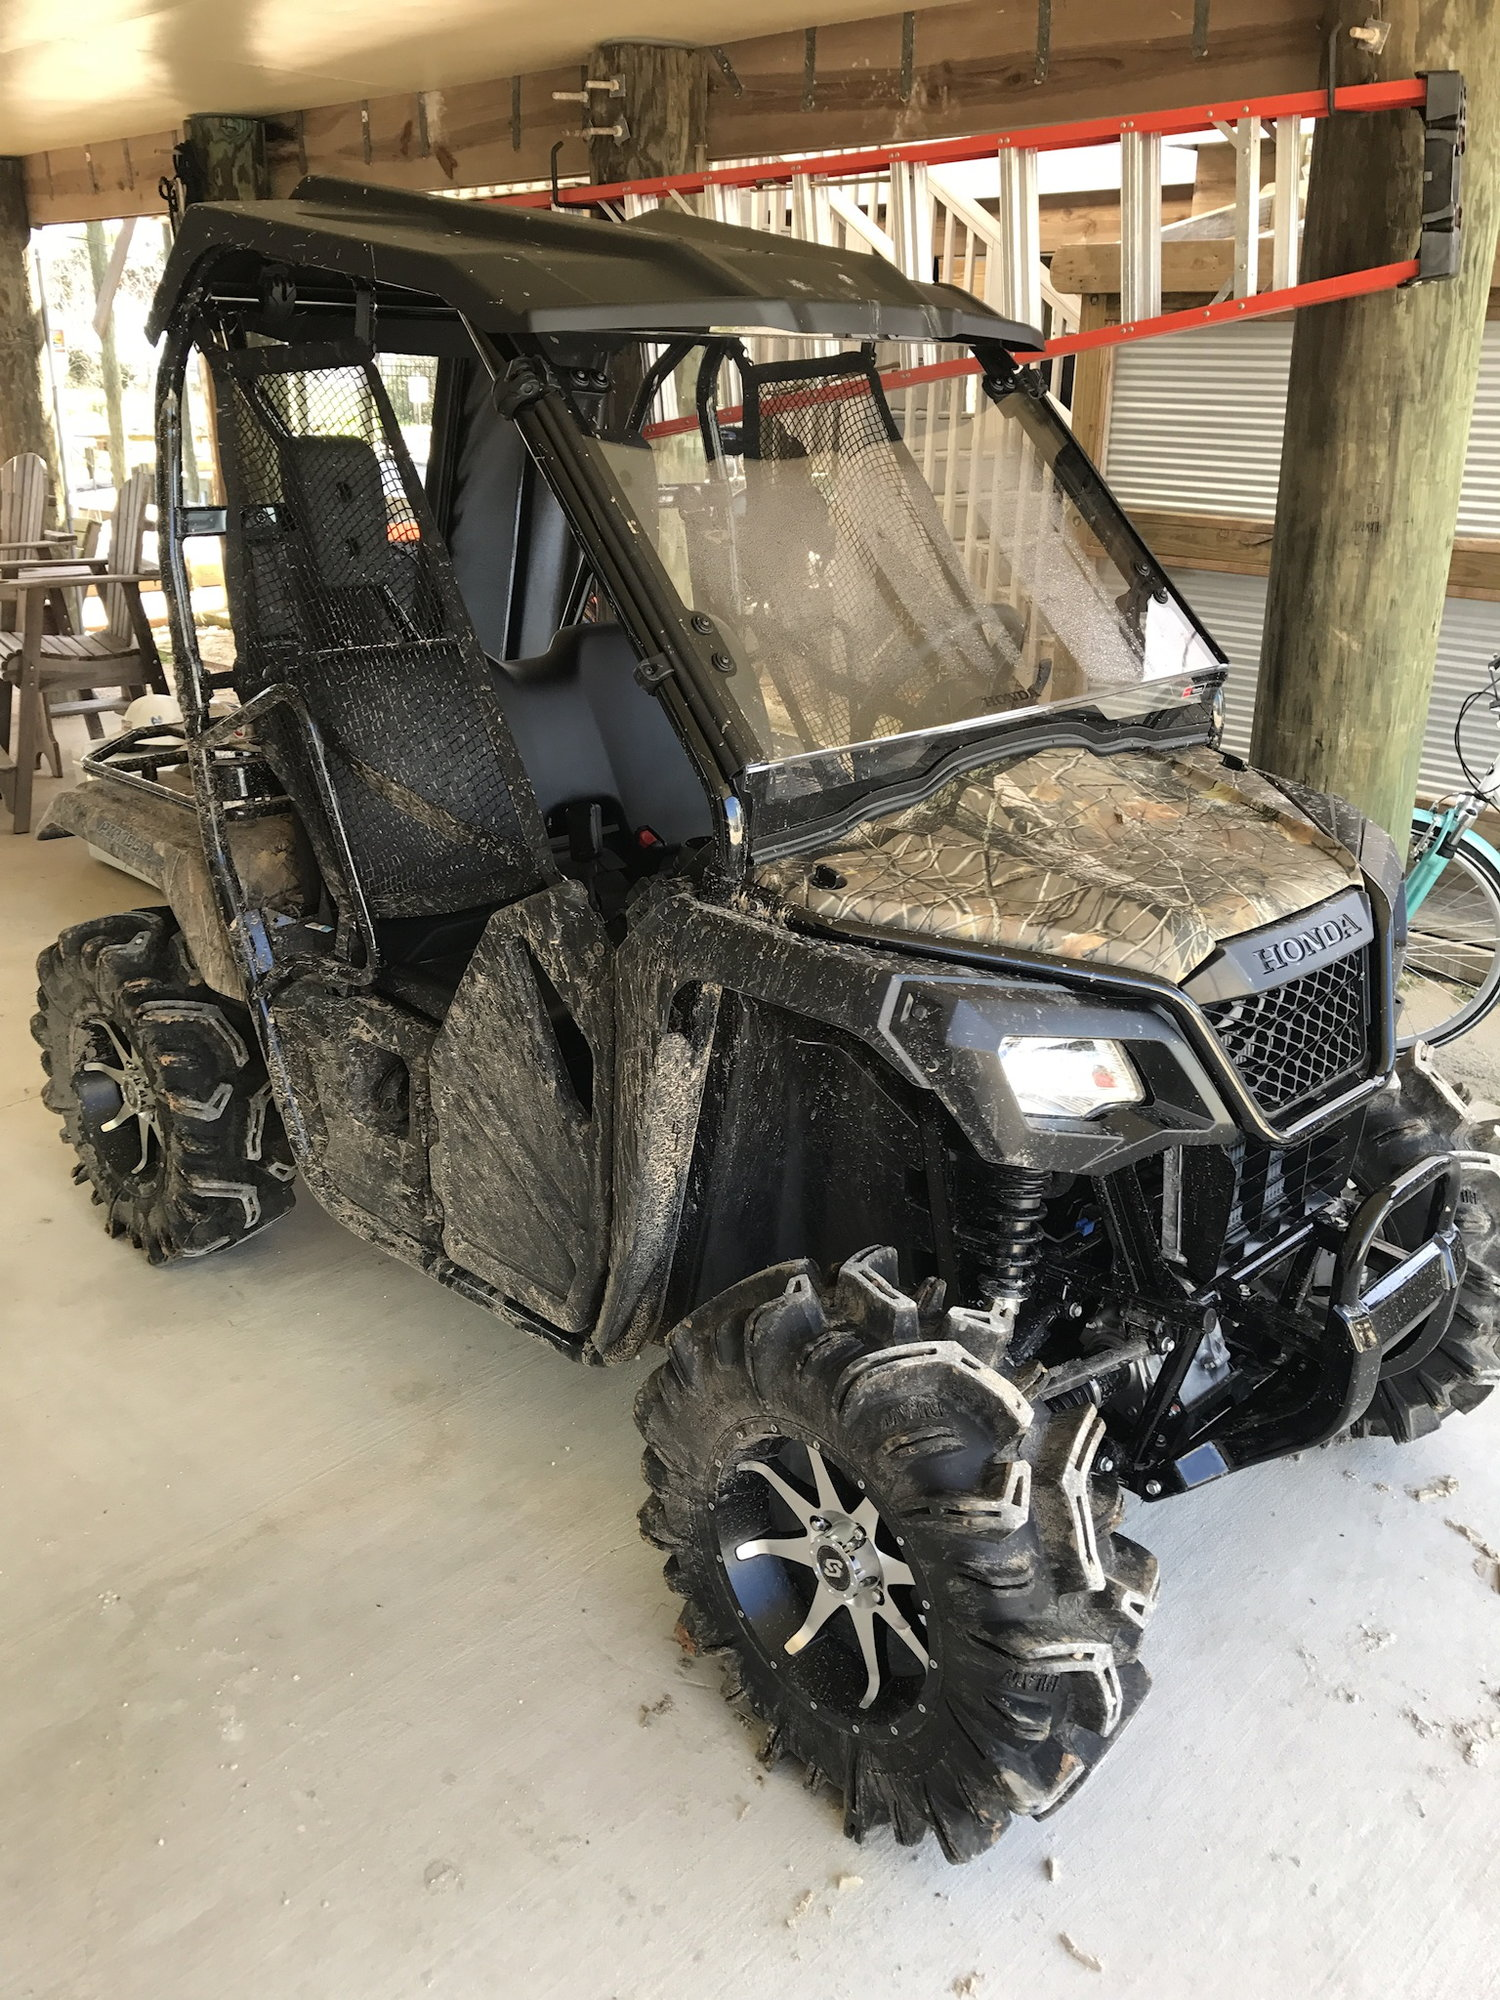 honda pioneer 500 automatic for sale the hull truth boating and fishing forum. Black Bedroom Furniture Sets. Home Design Ideas